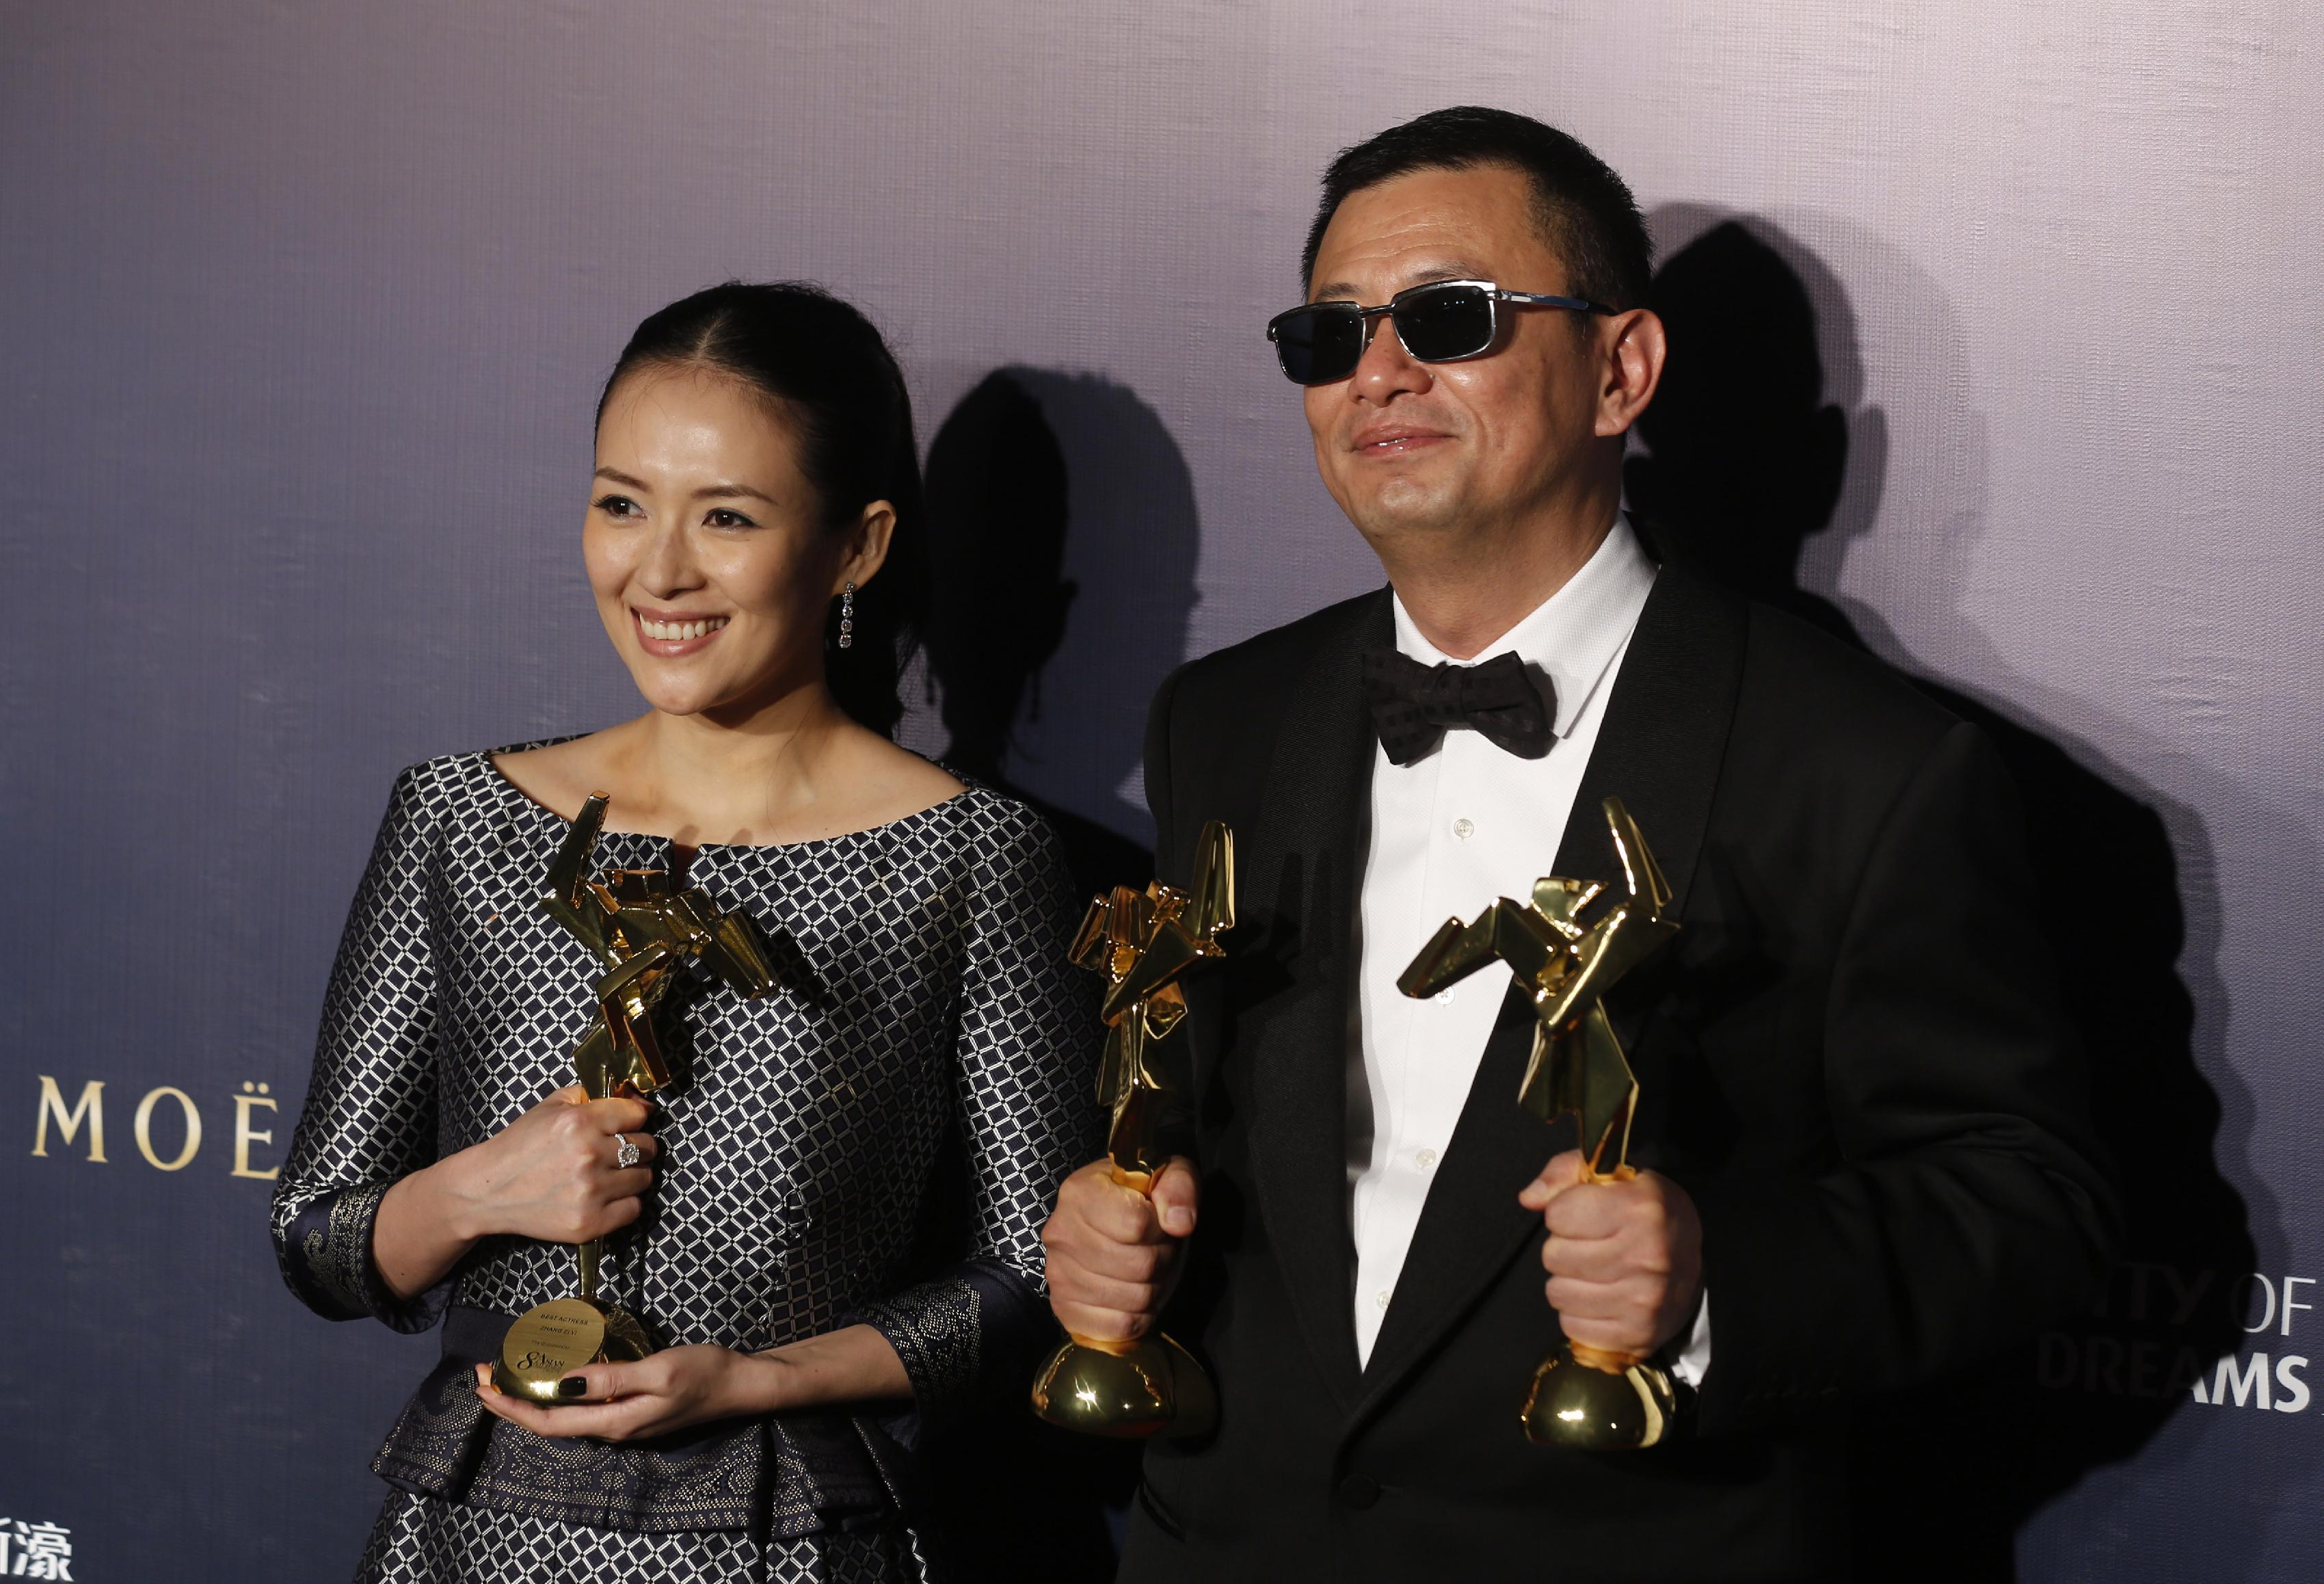 """Hong Kong director Wong Kar-wai, right, and Chinese actress Zhang Ziyi pose after winning the Best Director, the Best Movie and the Best Actress for their movie """"The Grandmaster,"""" of the Asian Film Awards in Macau Thursday, March 27, 2014. (AP Photo/Kin Cheung)"""